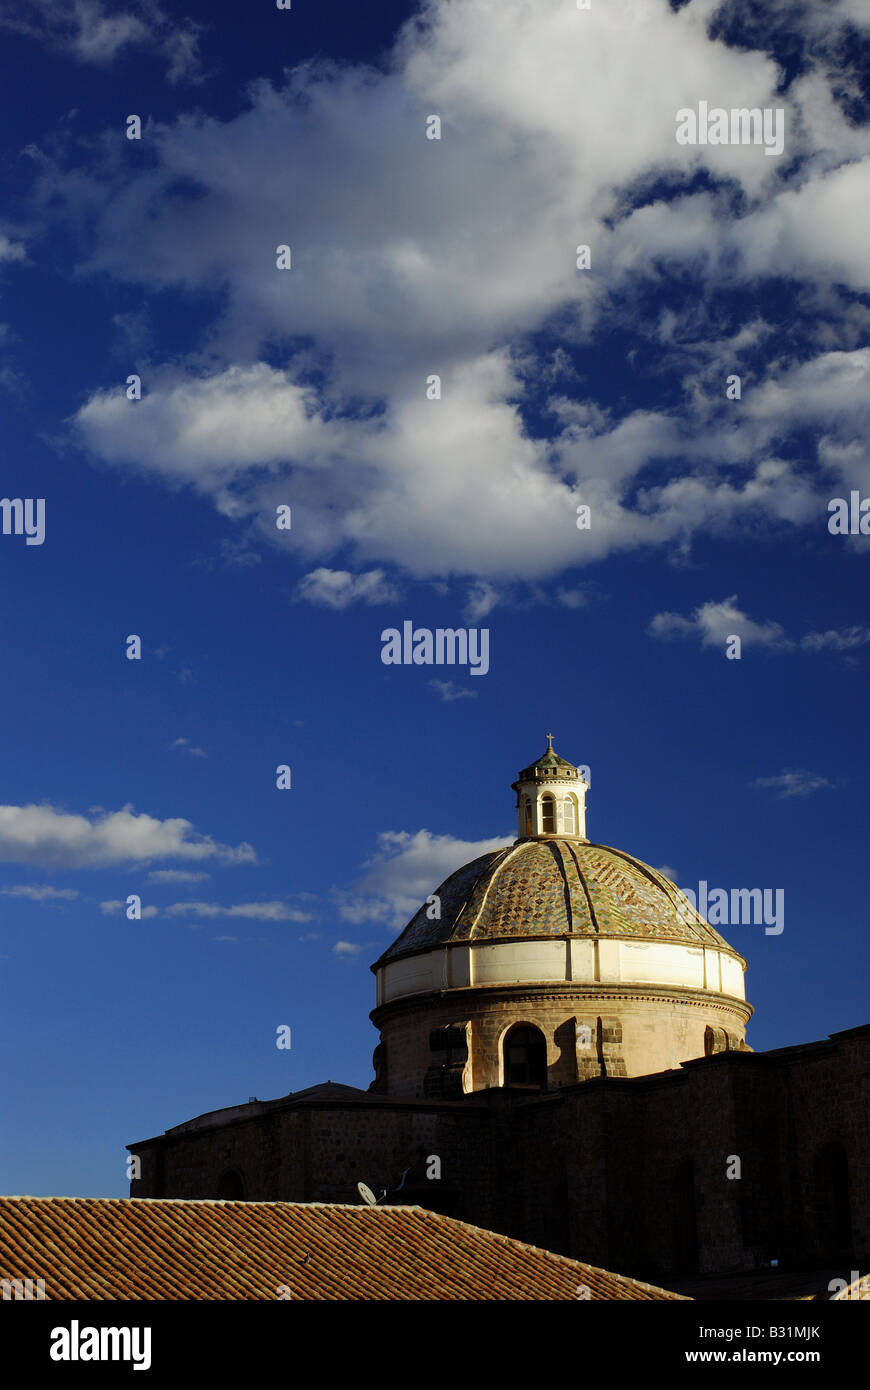 Peru, Iglesia de la Compania de Jesus, church built by the Jesuits in 1571 with baroque facade in Cuzco - Stock Image